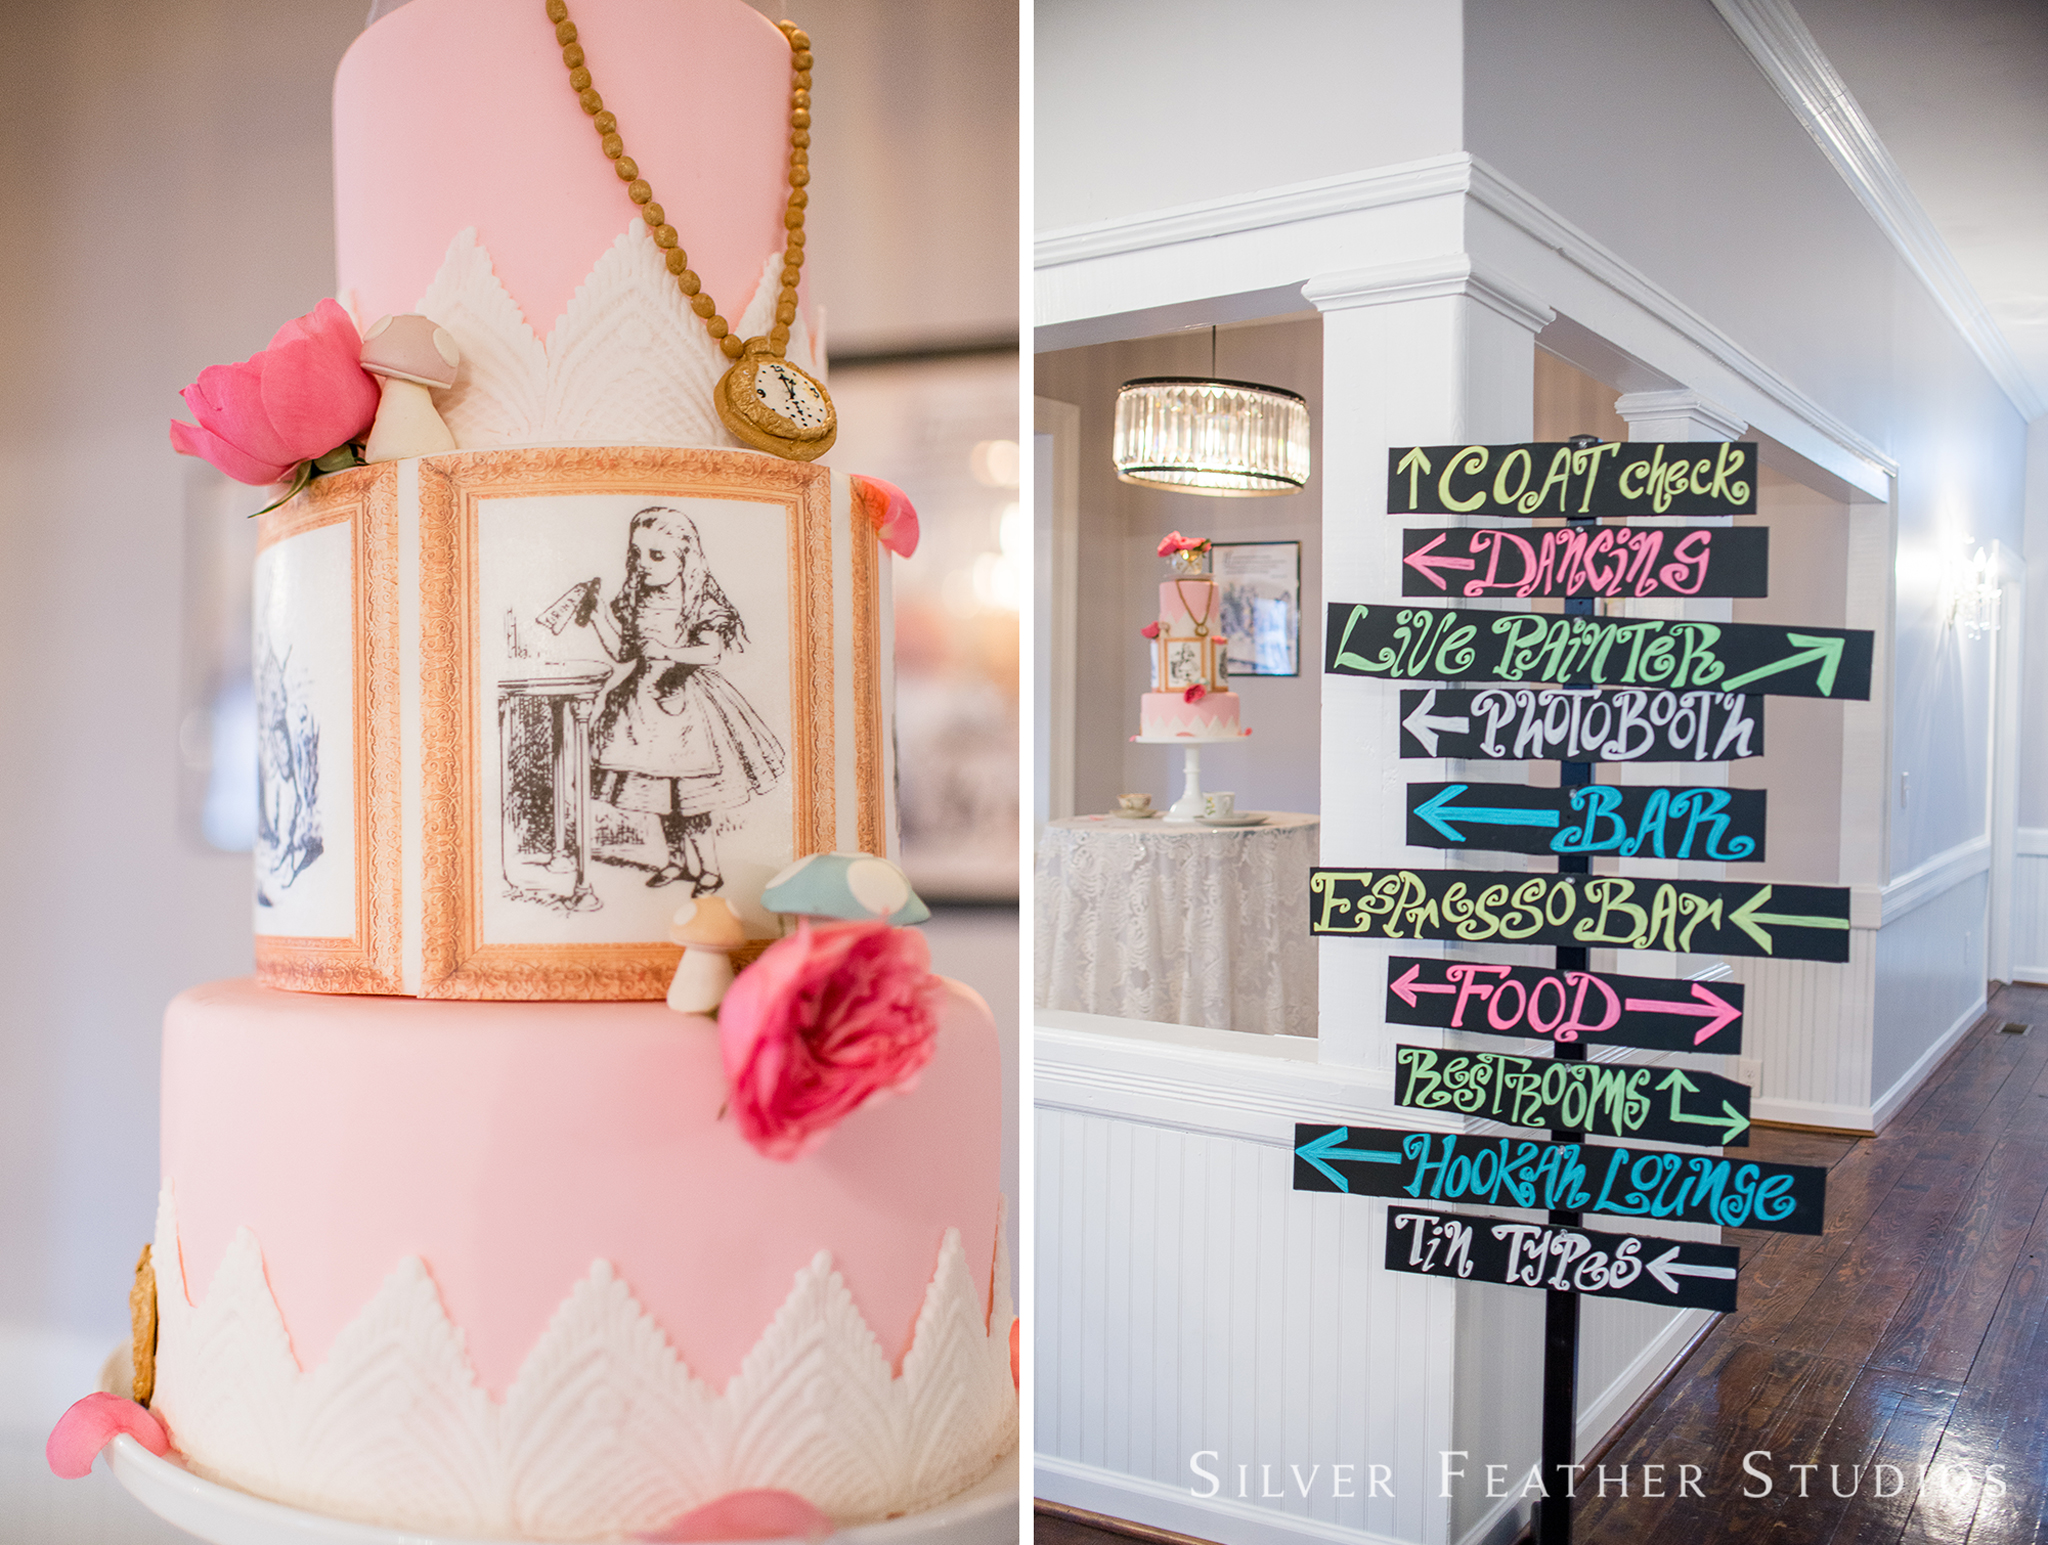 Pink Alice in Wonderland themed wedding cake, and chalkboard directional signs.